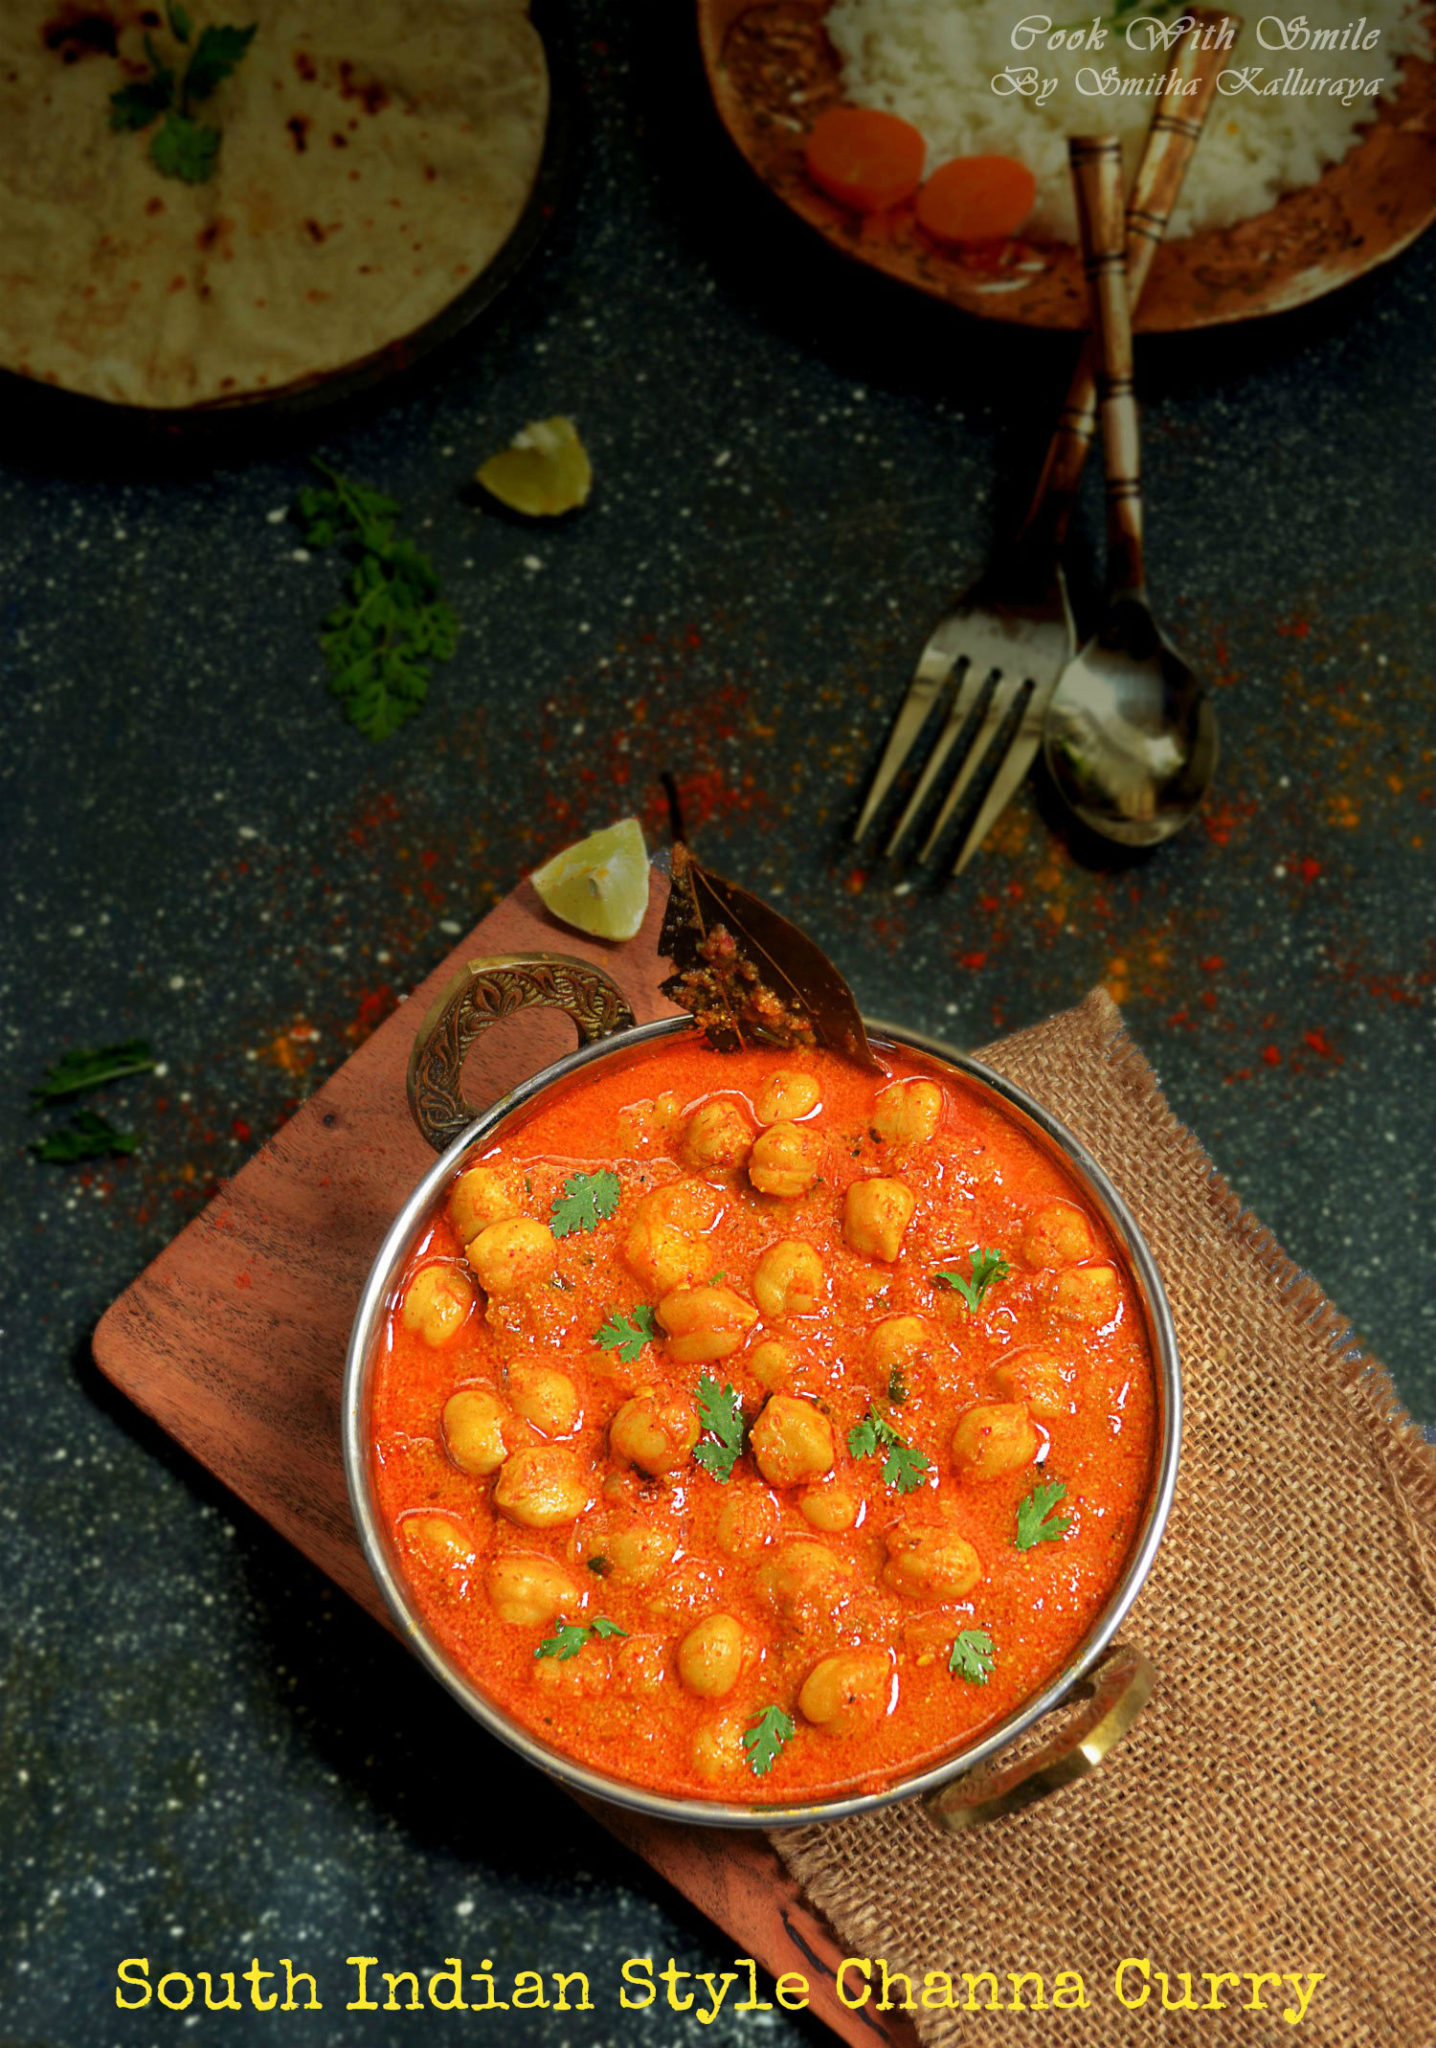 South indian style channa masala